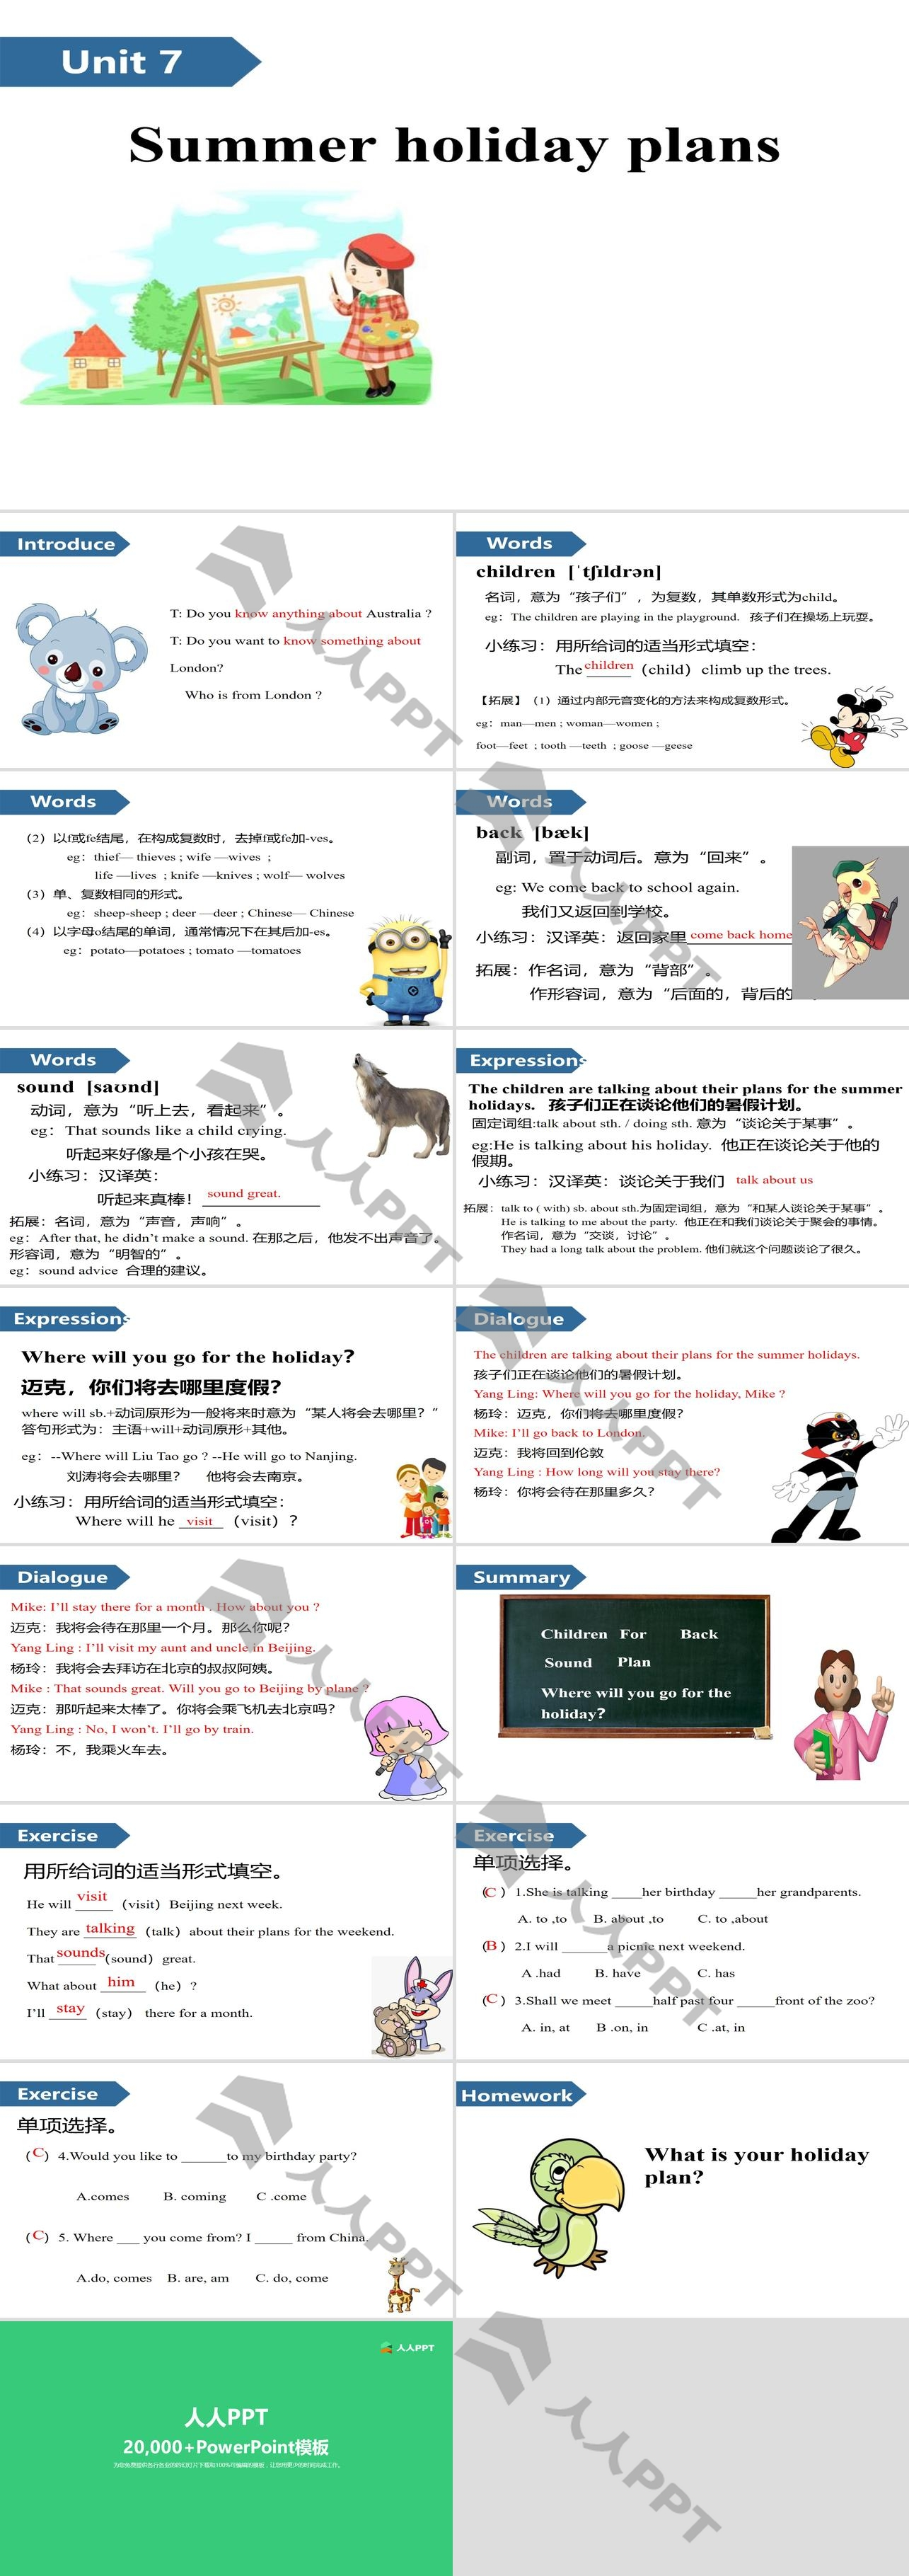 《Summer holiday plans》PPT(第一课时)长图